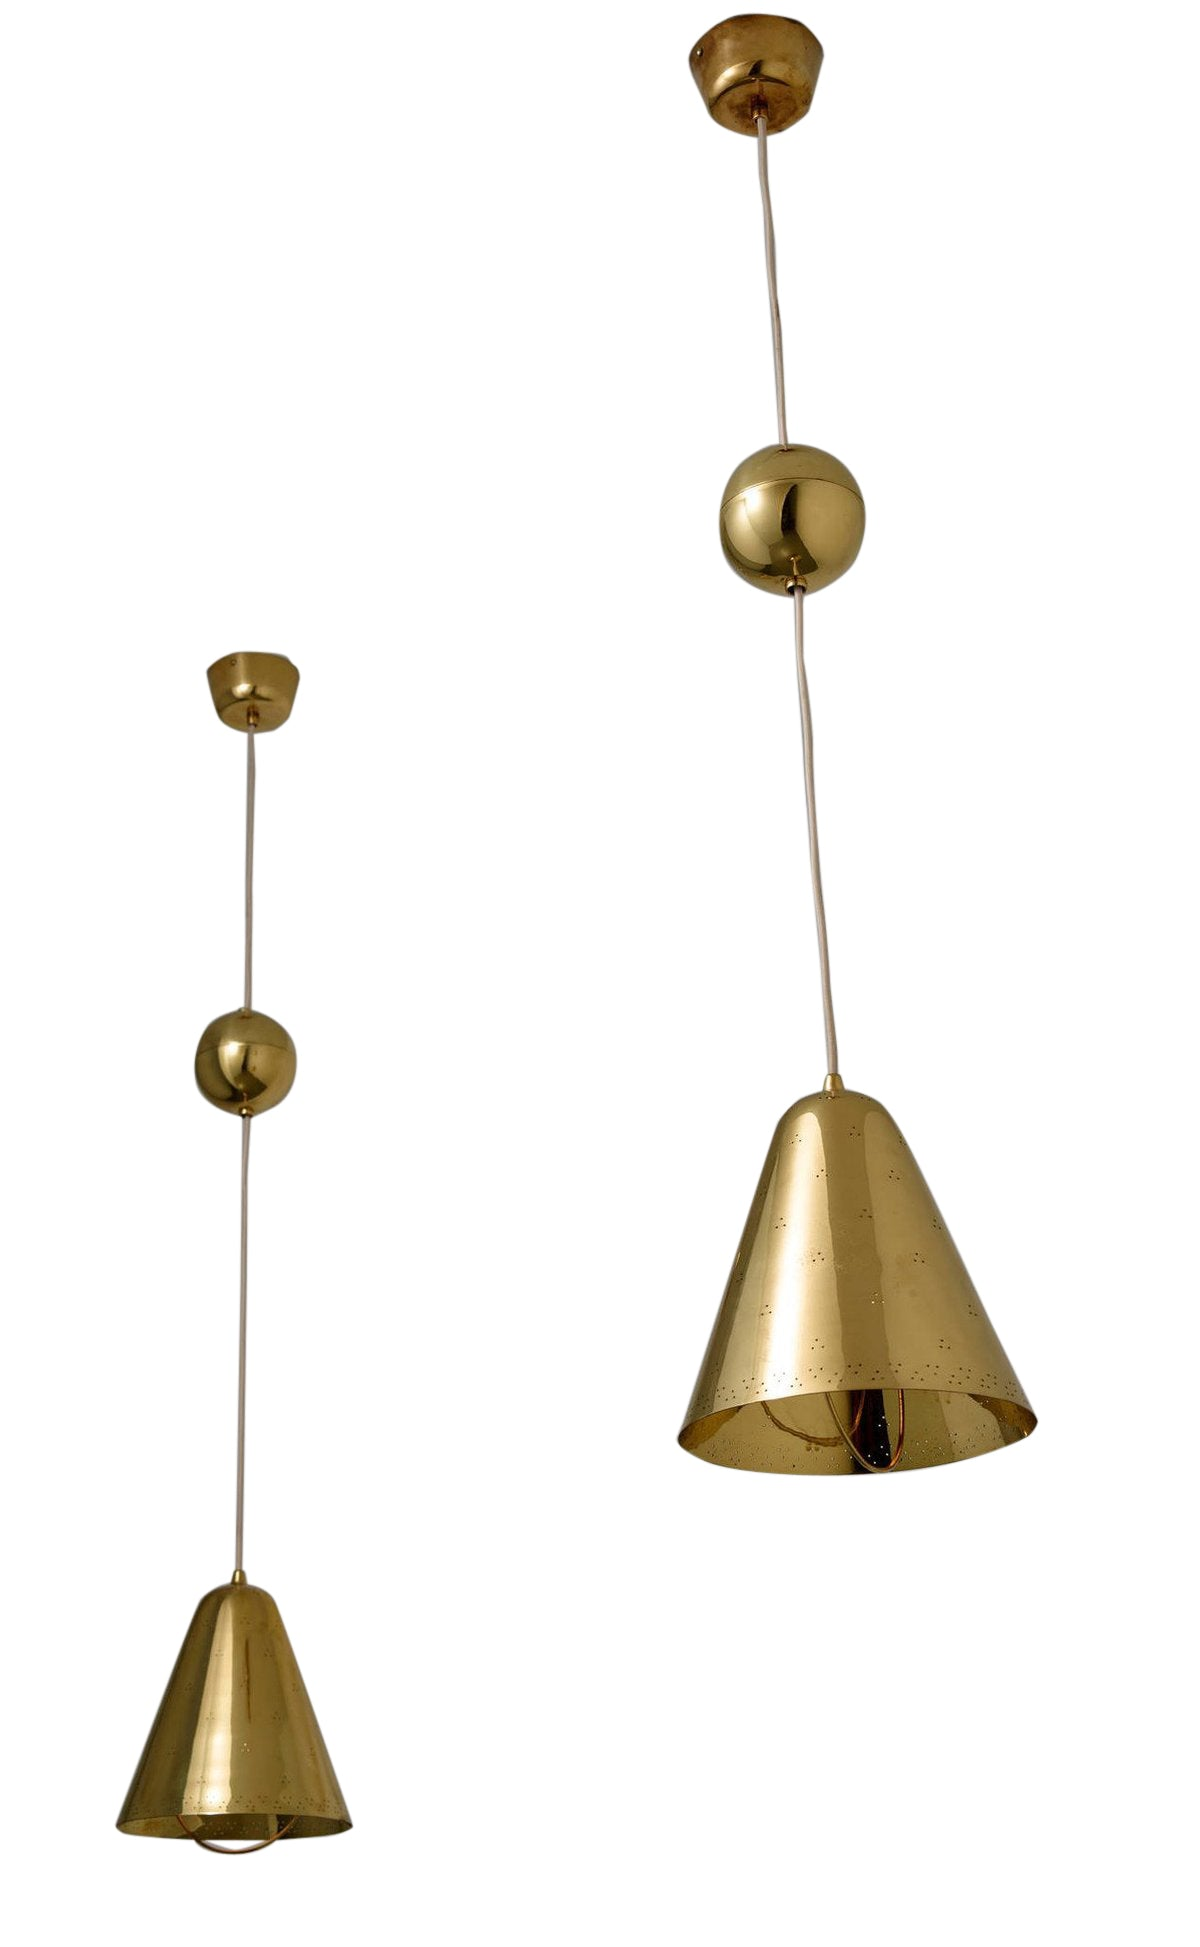 Paavo Tynell Ceiling Pendant Lights a Pair with Adjustable Height by Taito Oy 1950s